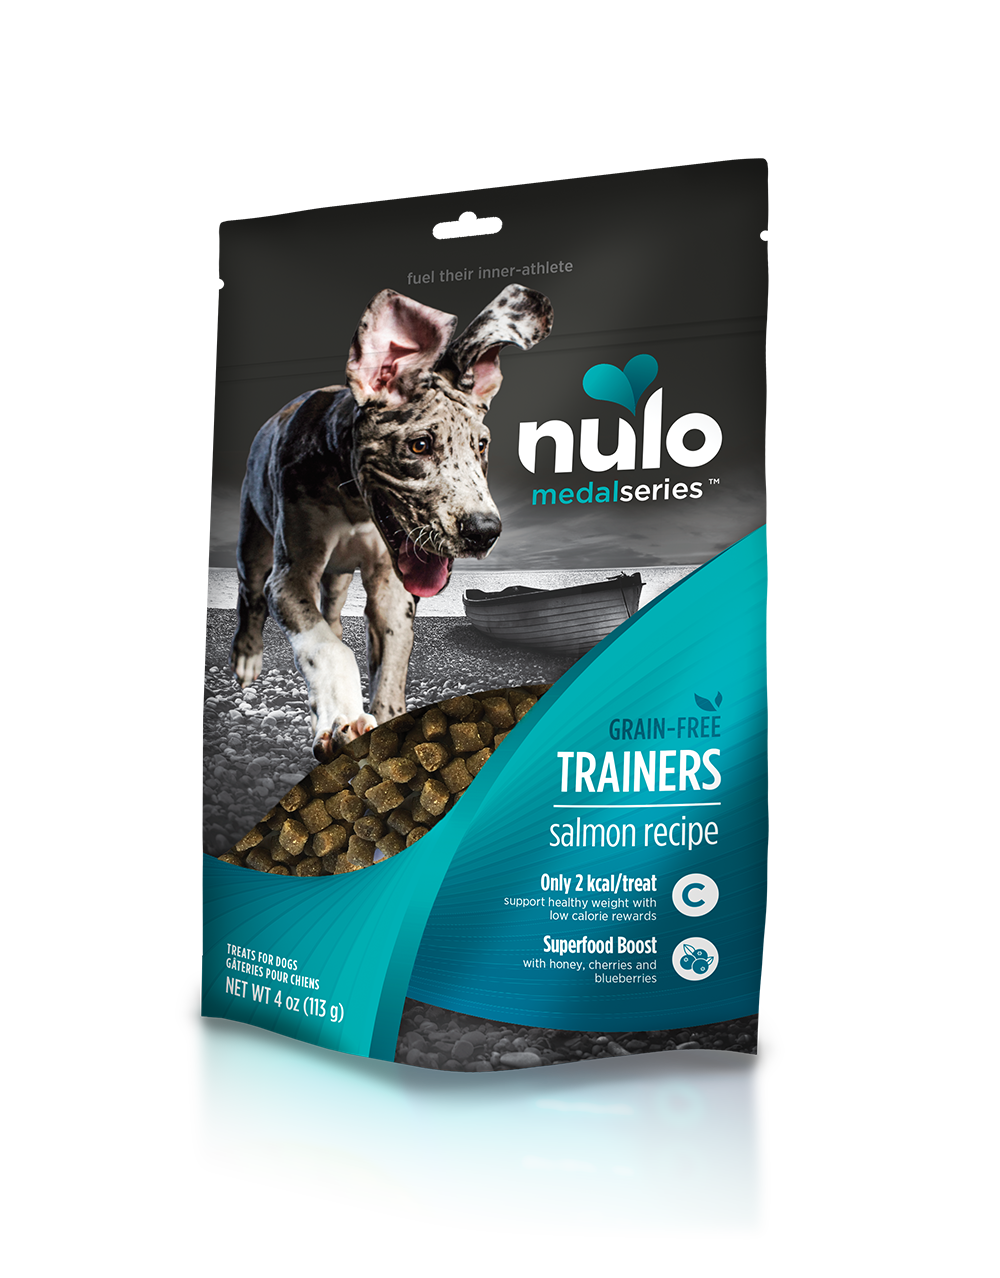 Nulo medalseries trainingtreats salmon